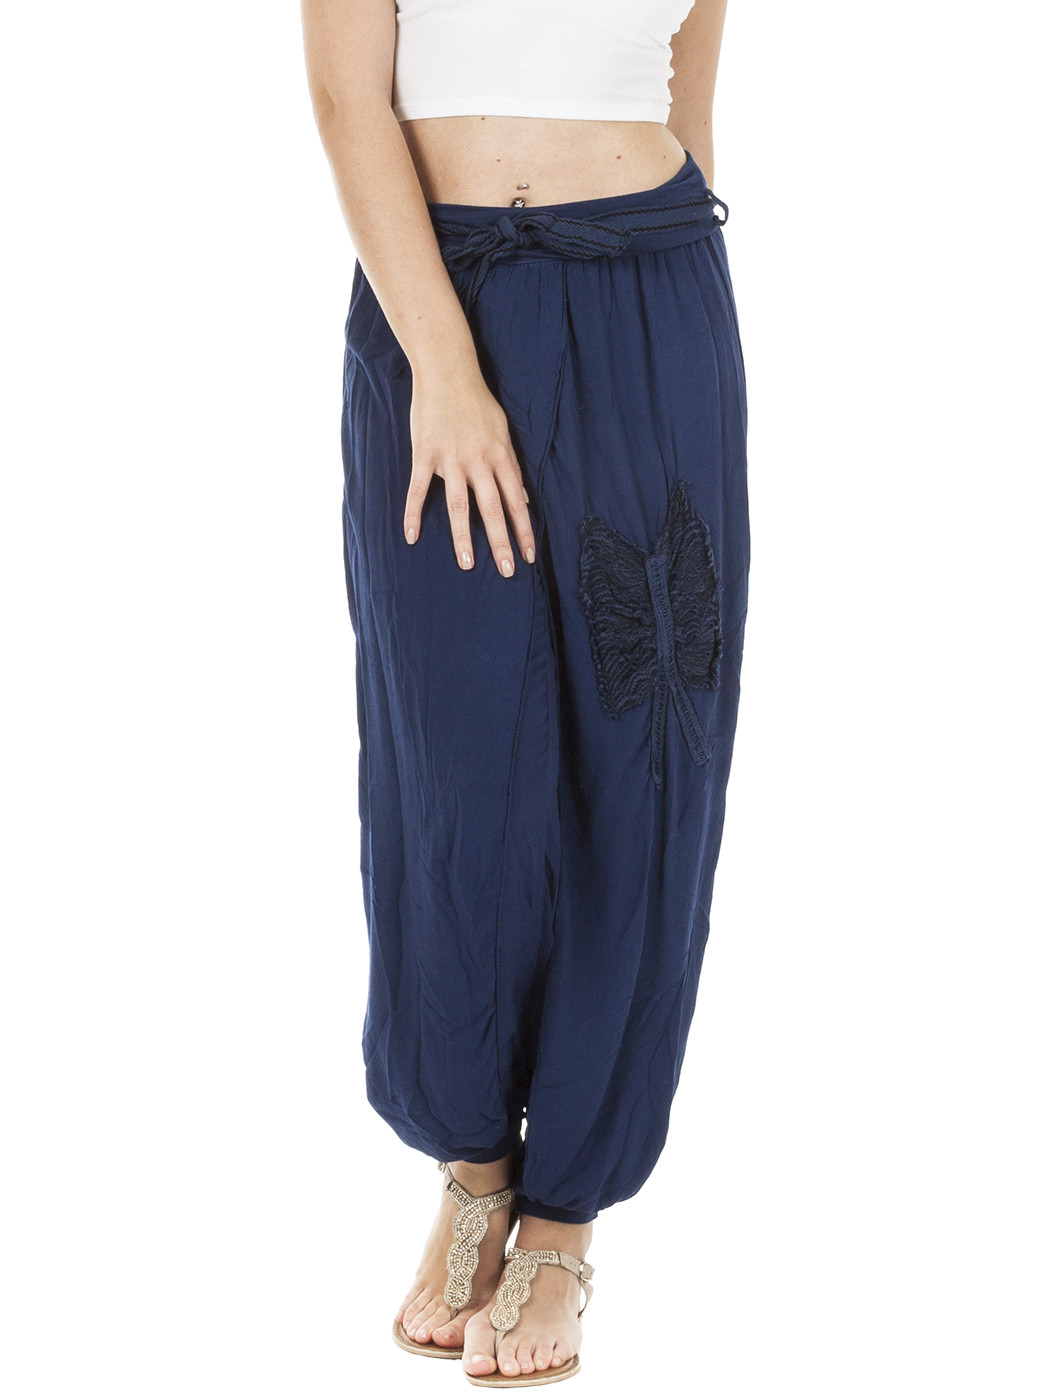 Mogul Interior Womens Ethnic Regular Harem Pants Printed Elastic High Waist With 2 Front Pockets Loose Casual Pant. Sold by Mogul Interior. $ $ Mogul Interior Womens Loose Casual Pant High Waist With 2 Front Pockets Patchwork Cotton Regular Harem Pants.